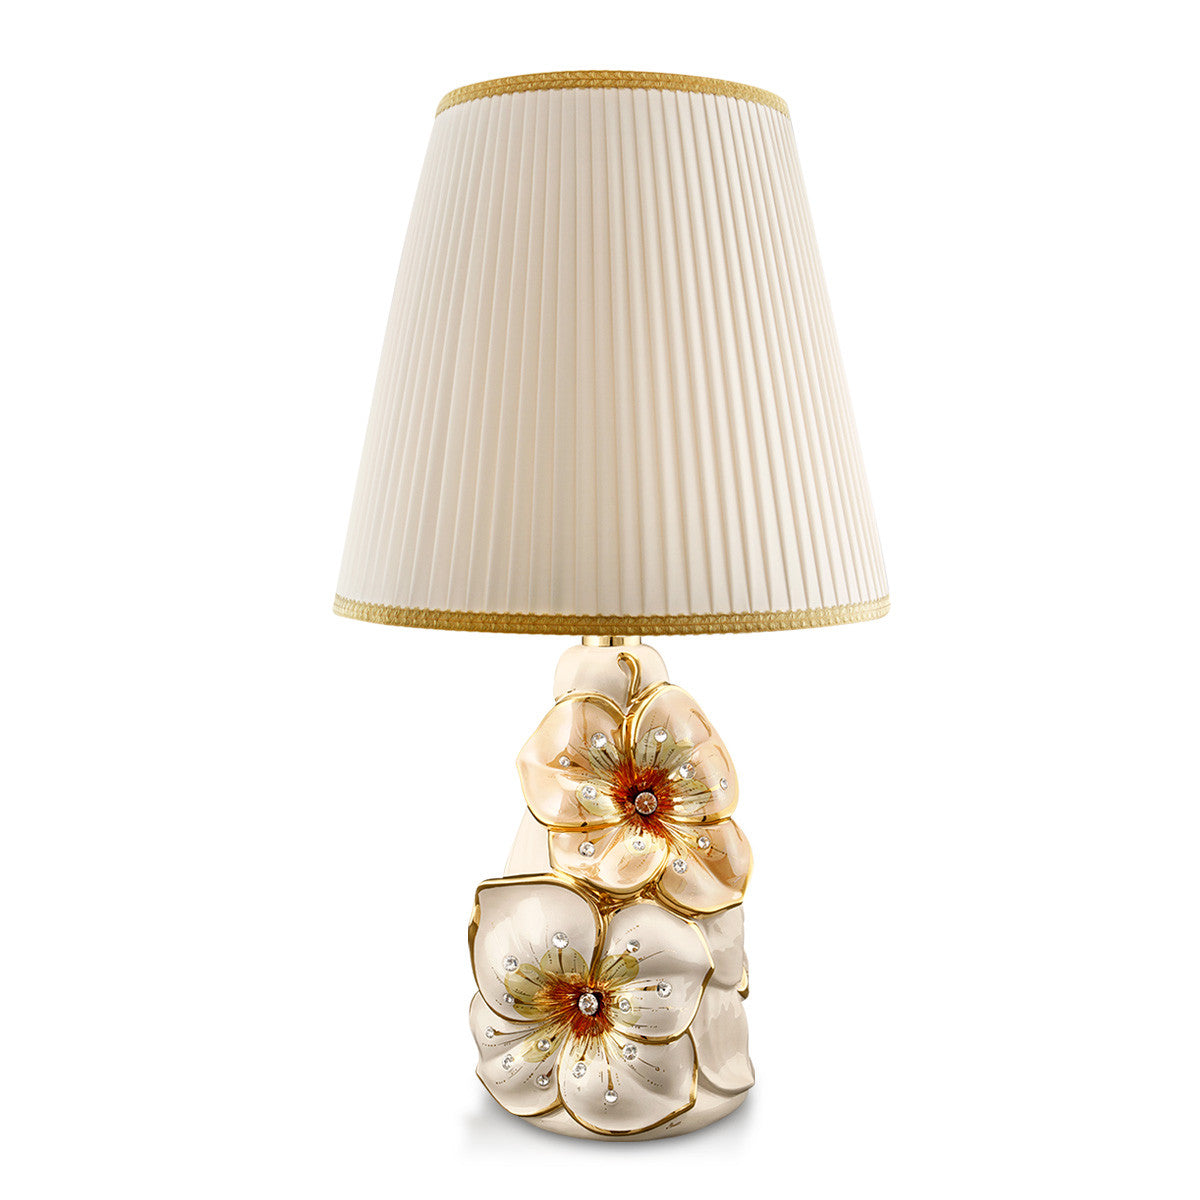 Ceramic table lamp | Flower